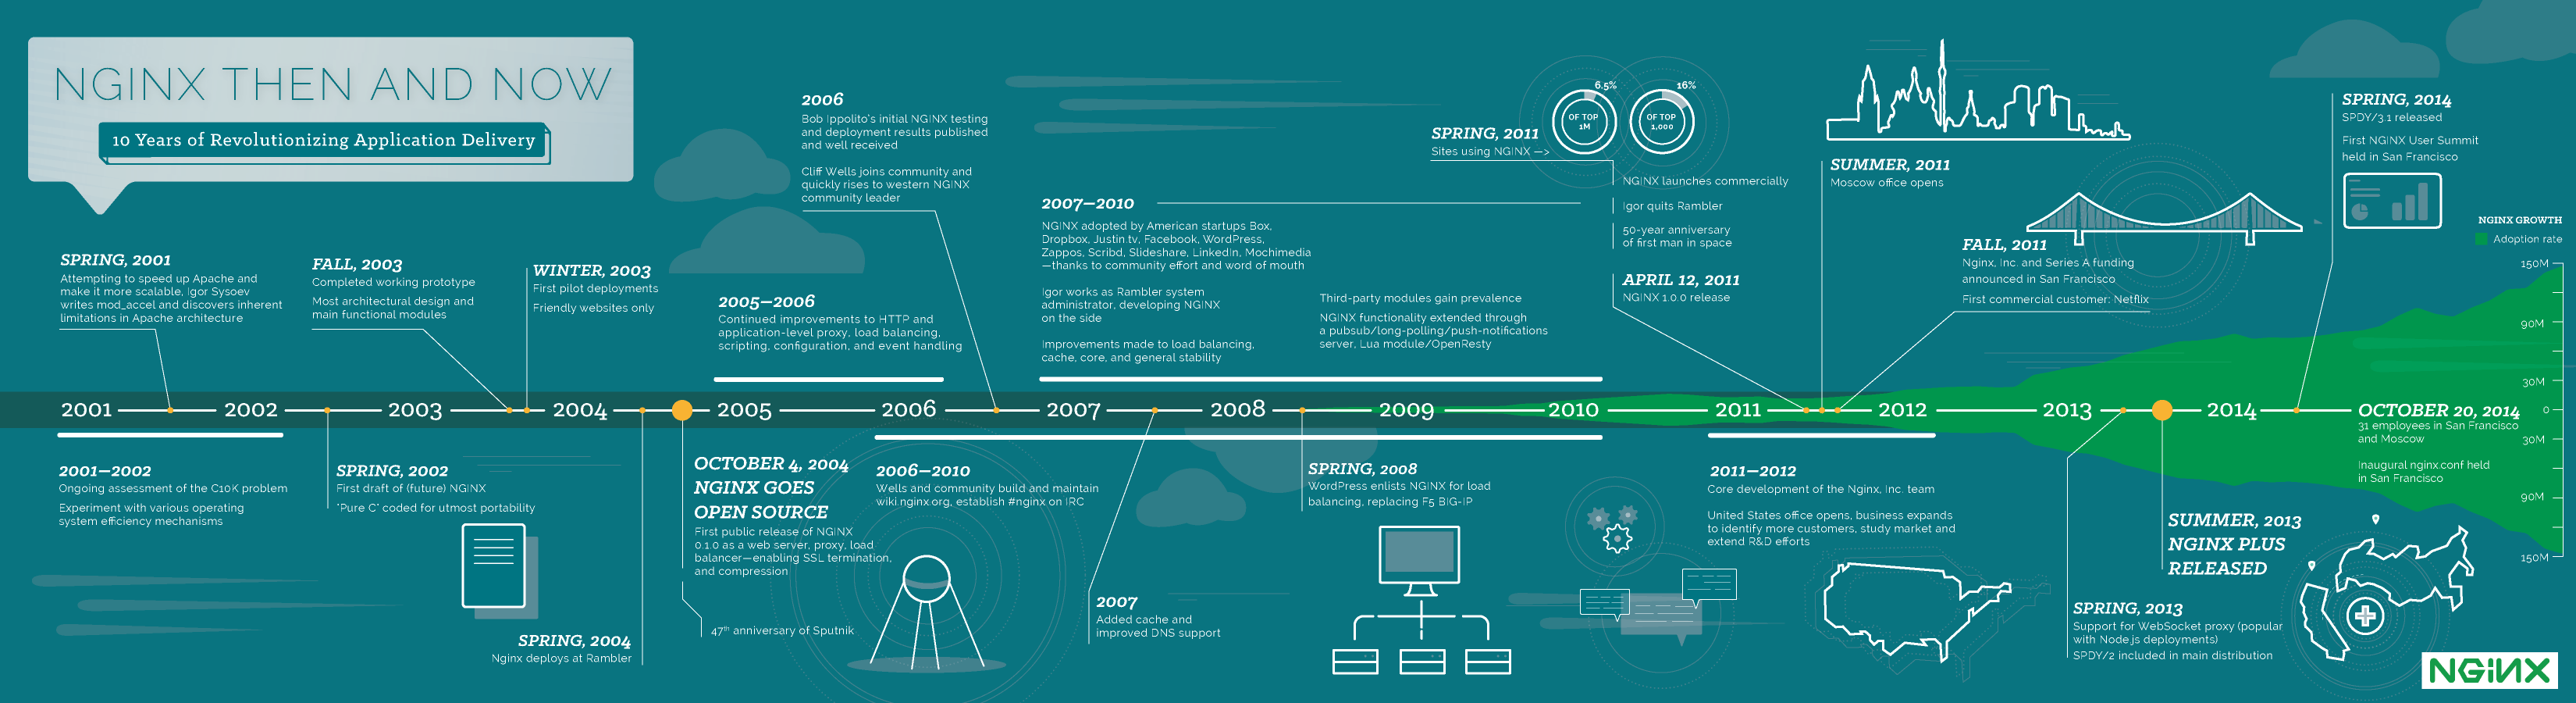 Infographic_History-of-Nginx_FulI_20141101.png